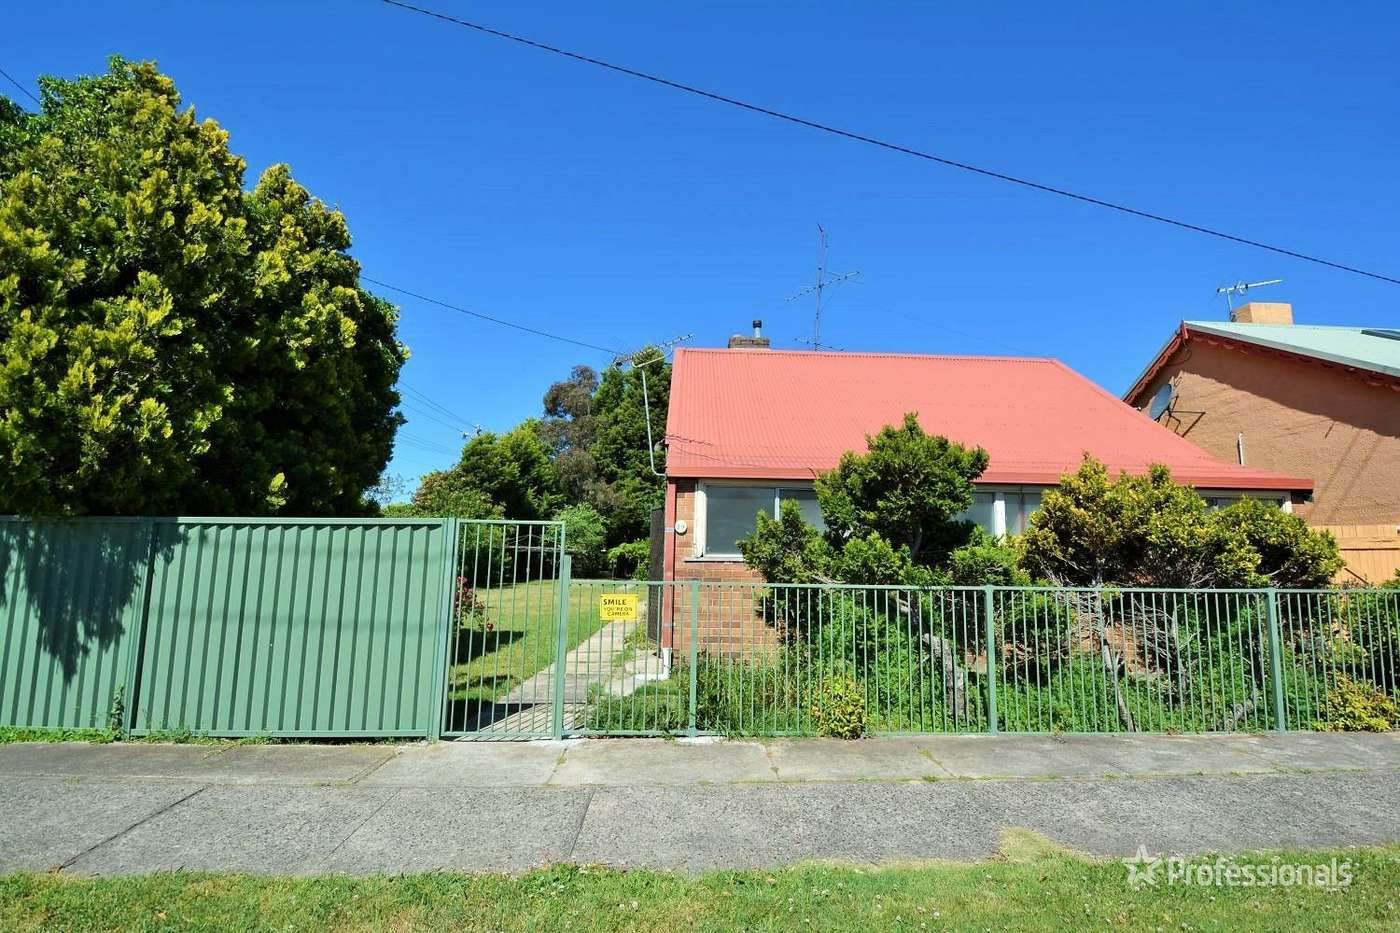 Main view of Homely house listing, 39 Tank Street, Lithgow, NSW 2790